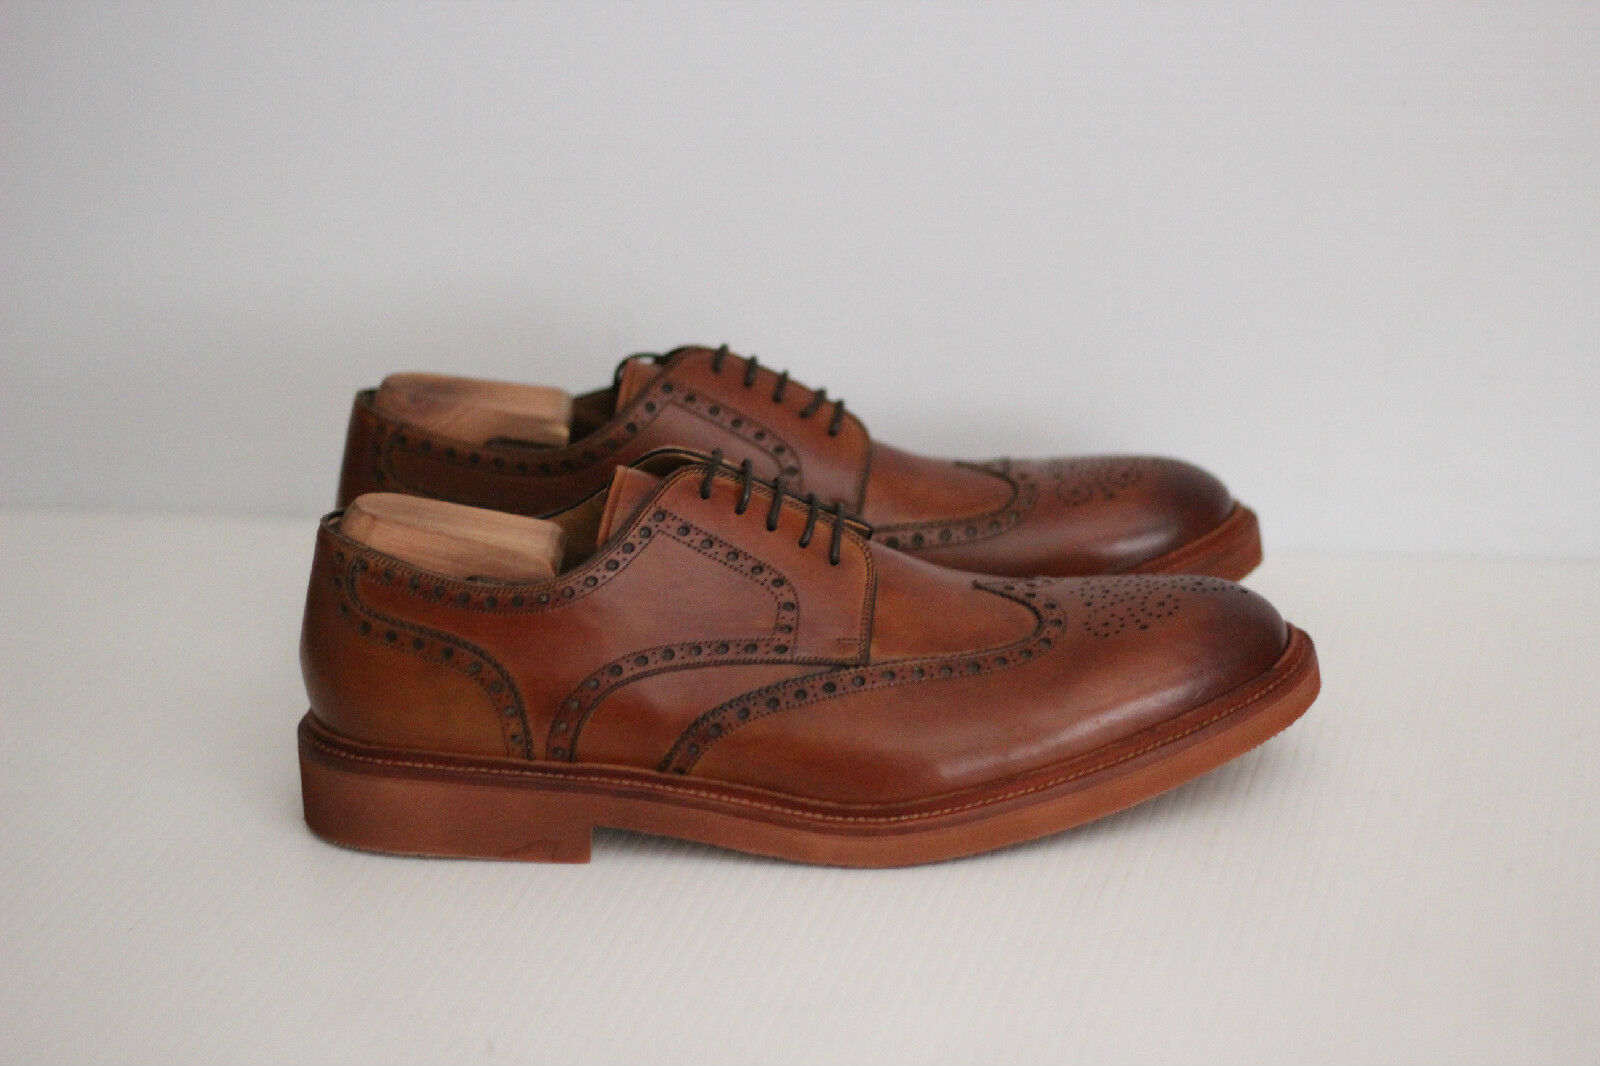 NEW Magnanni Neto Leather Lace Up Wingtip Brogue Derby - Cognac Brown 13M (X71)